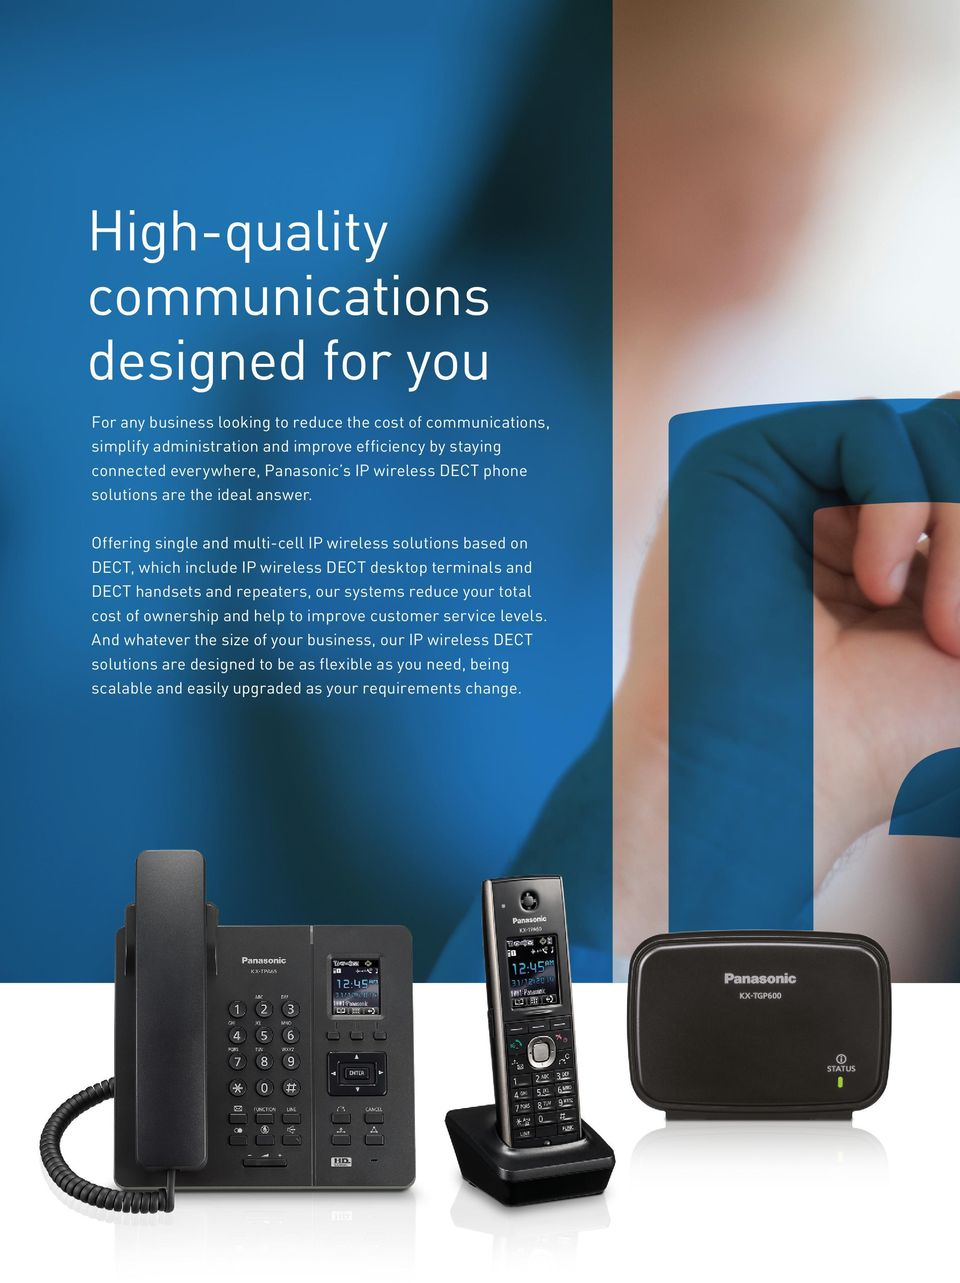 Offering single and multi-cell IP wireless solutions based on DECT, which include IP wireless DECT desktop terminals and DECT handsets and repeaters, our systems reduce